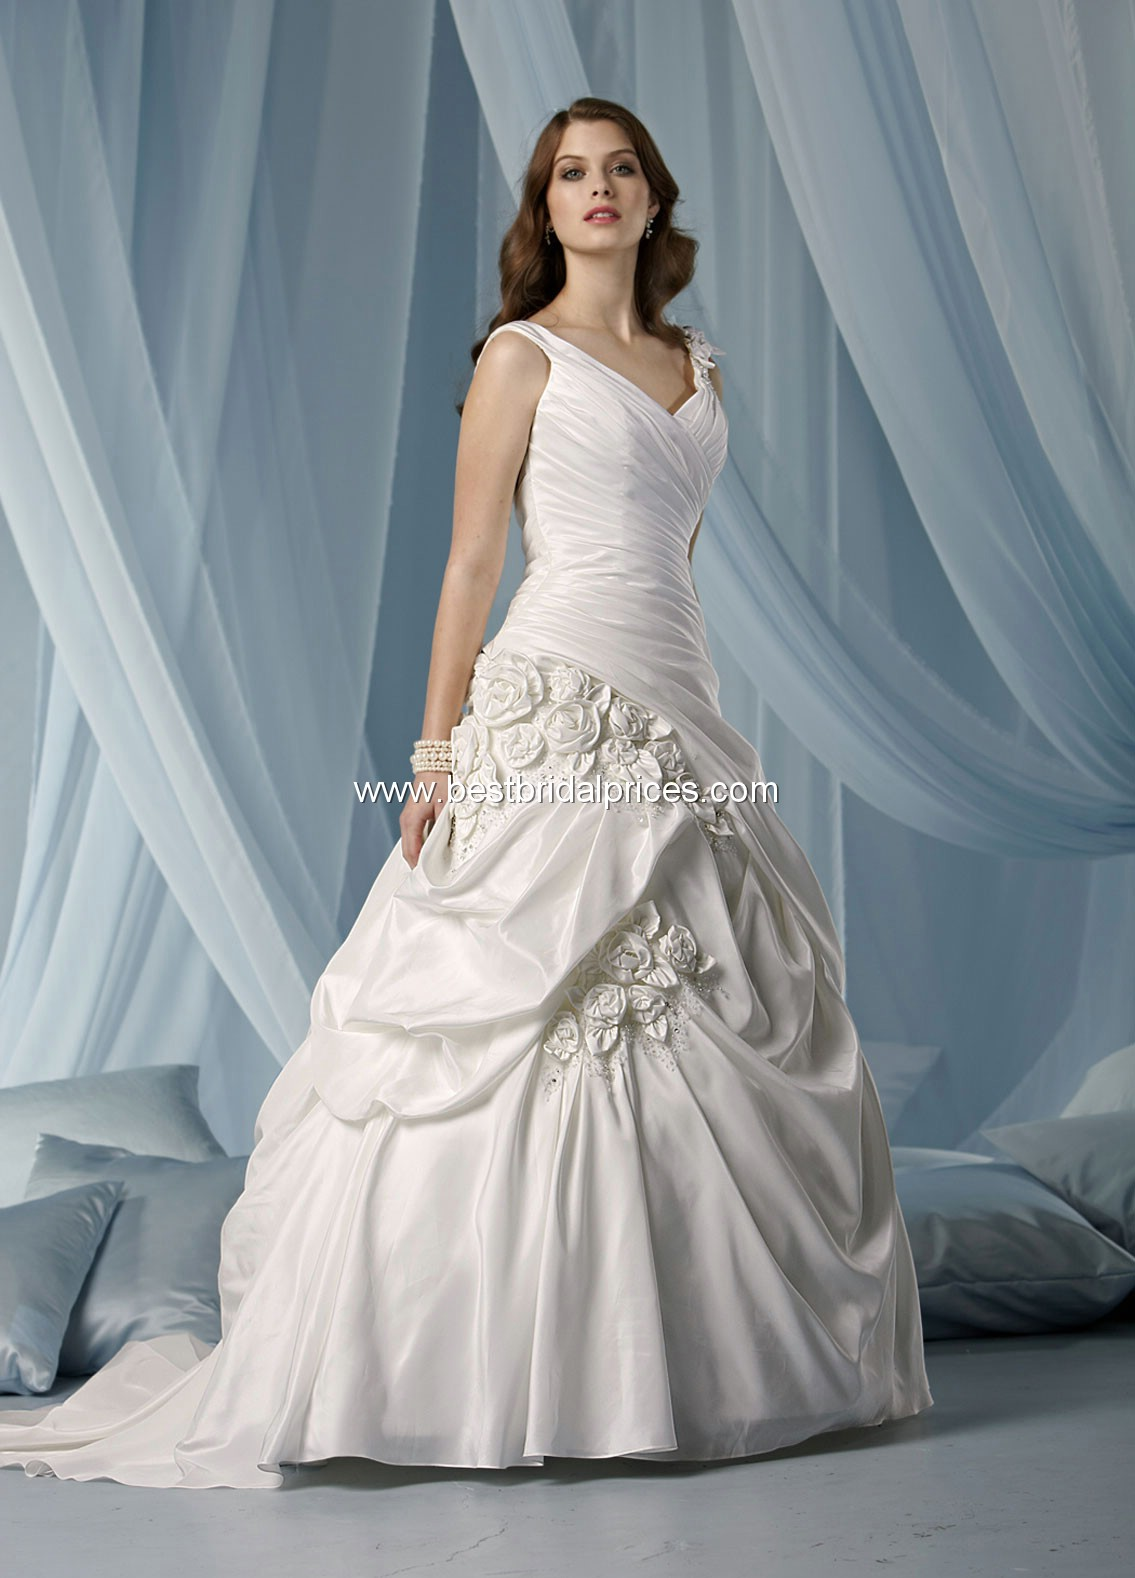 Wedding dresses and wedding accessories june 2011 for Wedding dresses for pear shaped women